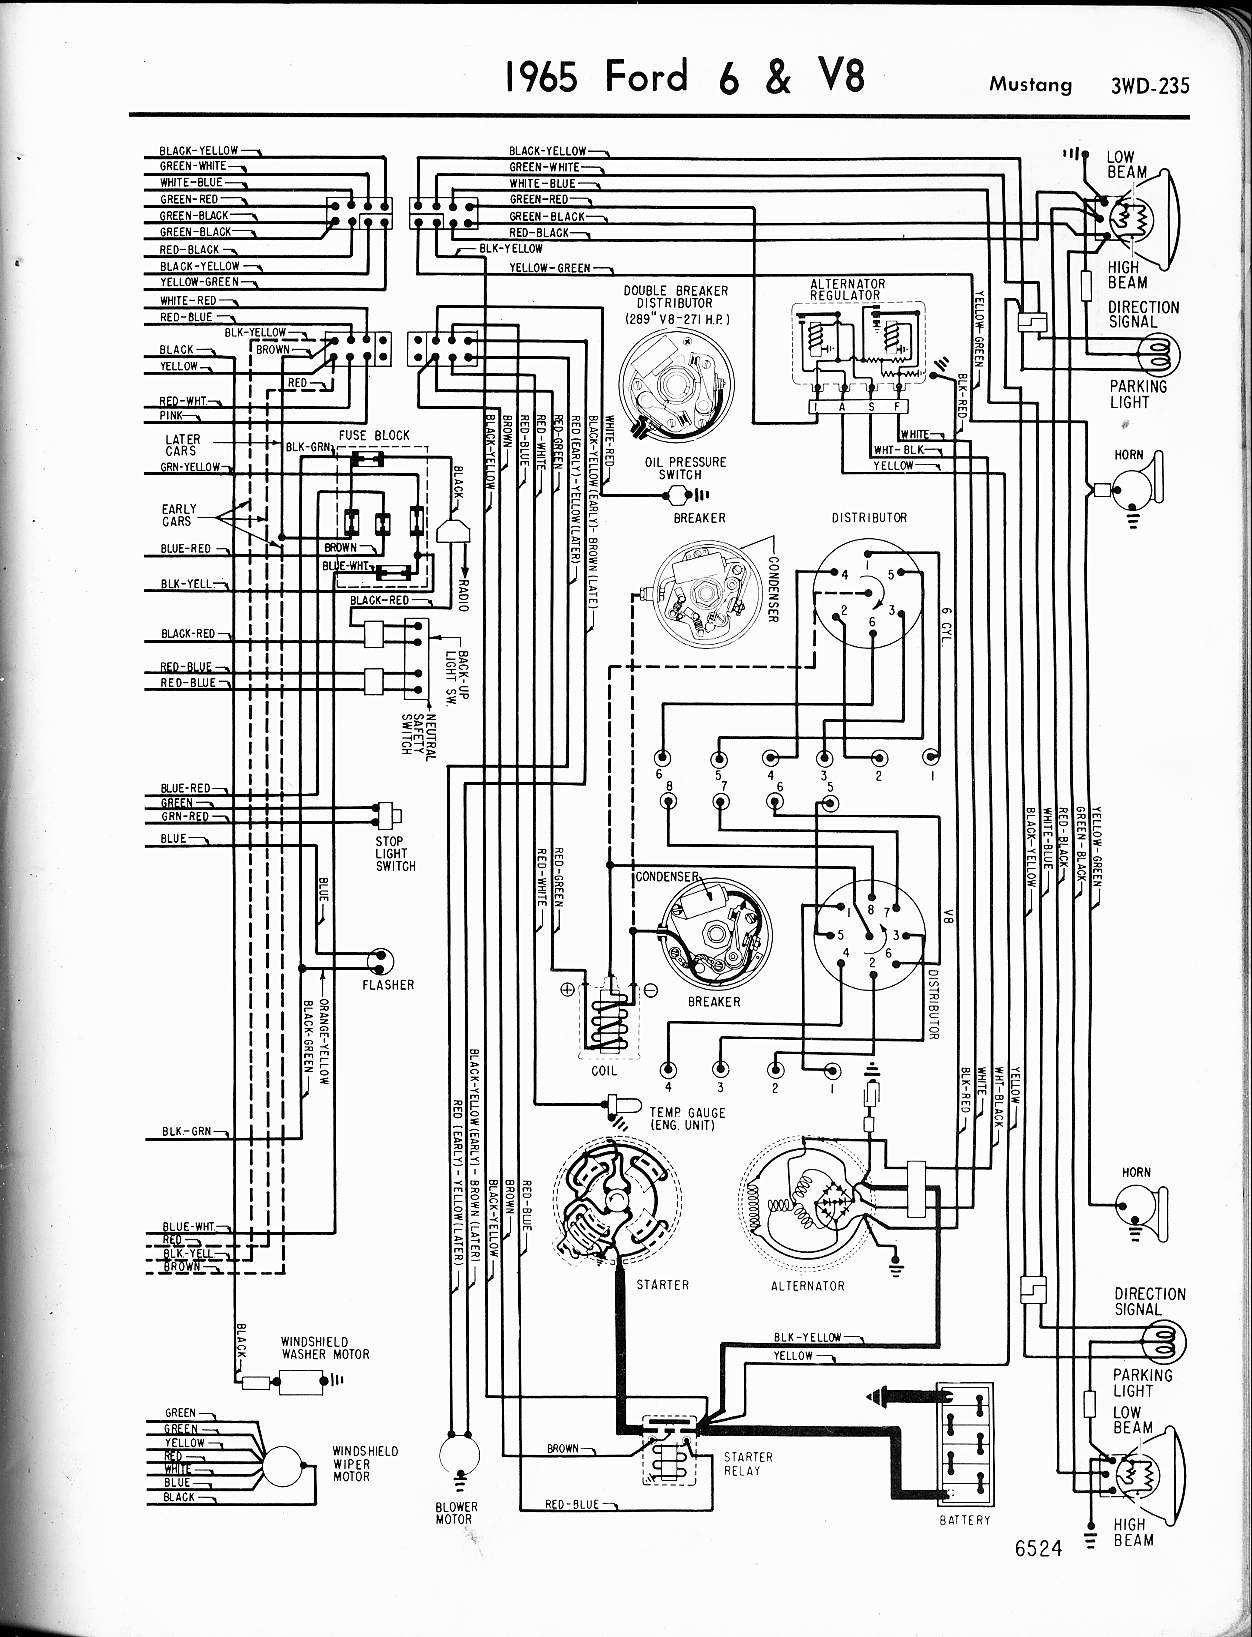 ford diagrams, Wiring diagram